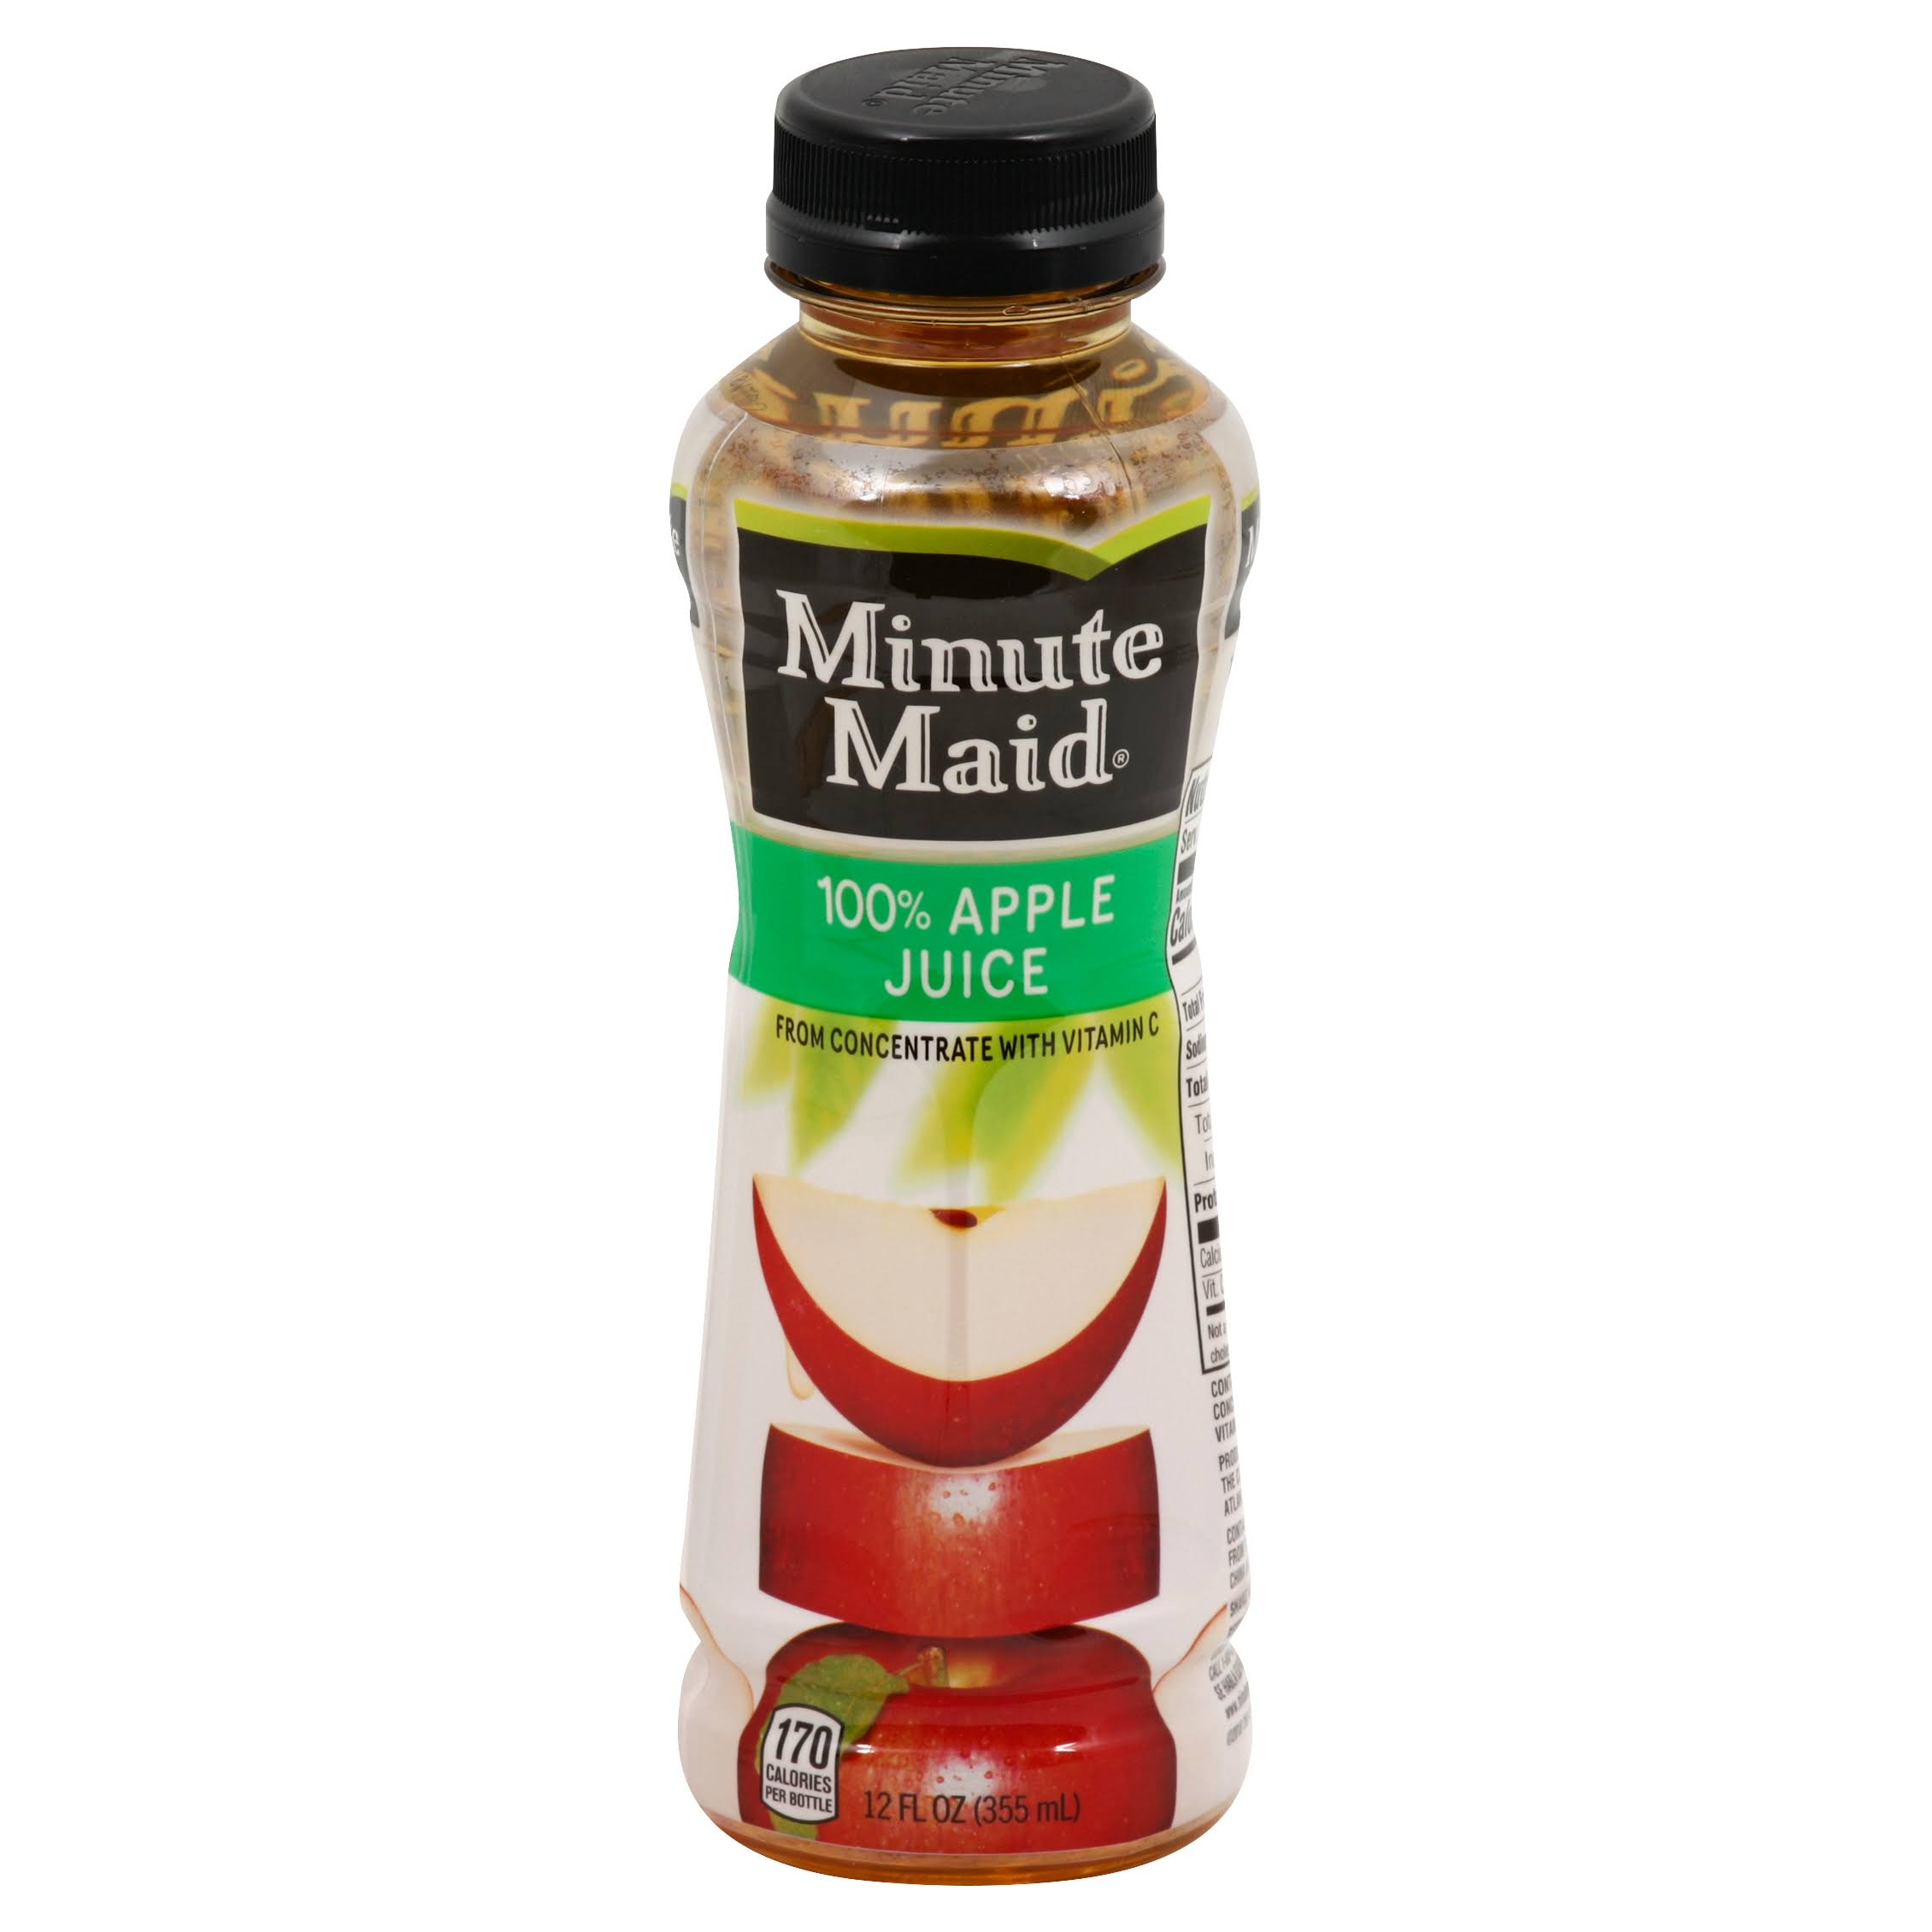 Minute Maid 100% Juice, Apple - 12 fl oz